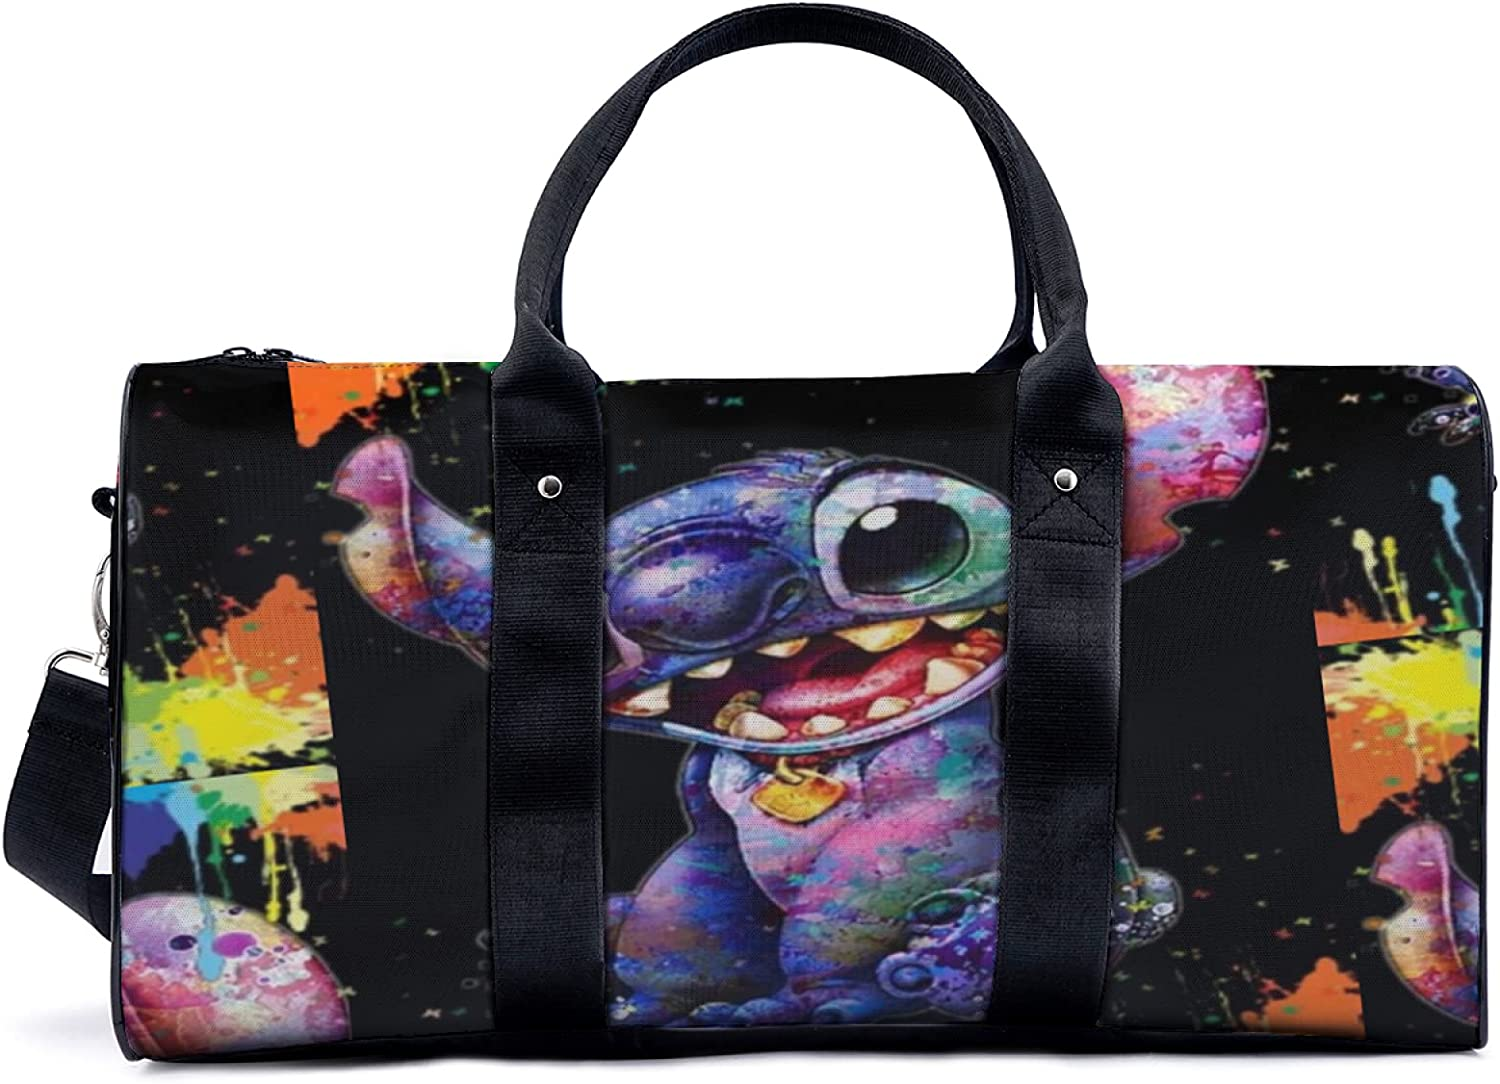 Stitch Fun Lilo Sports Duffle Limited time trial price Bag Travel Gym Adj With Duffel 70% OFF Outlet